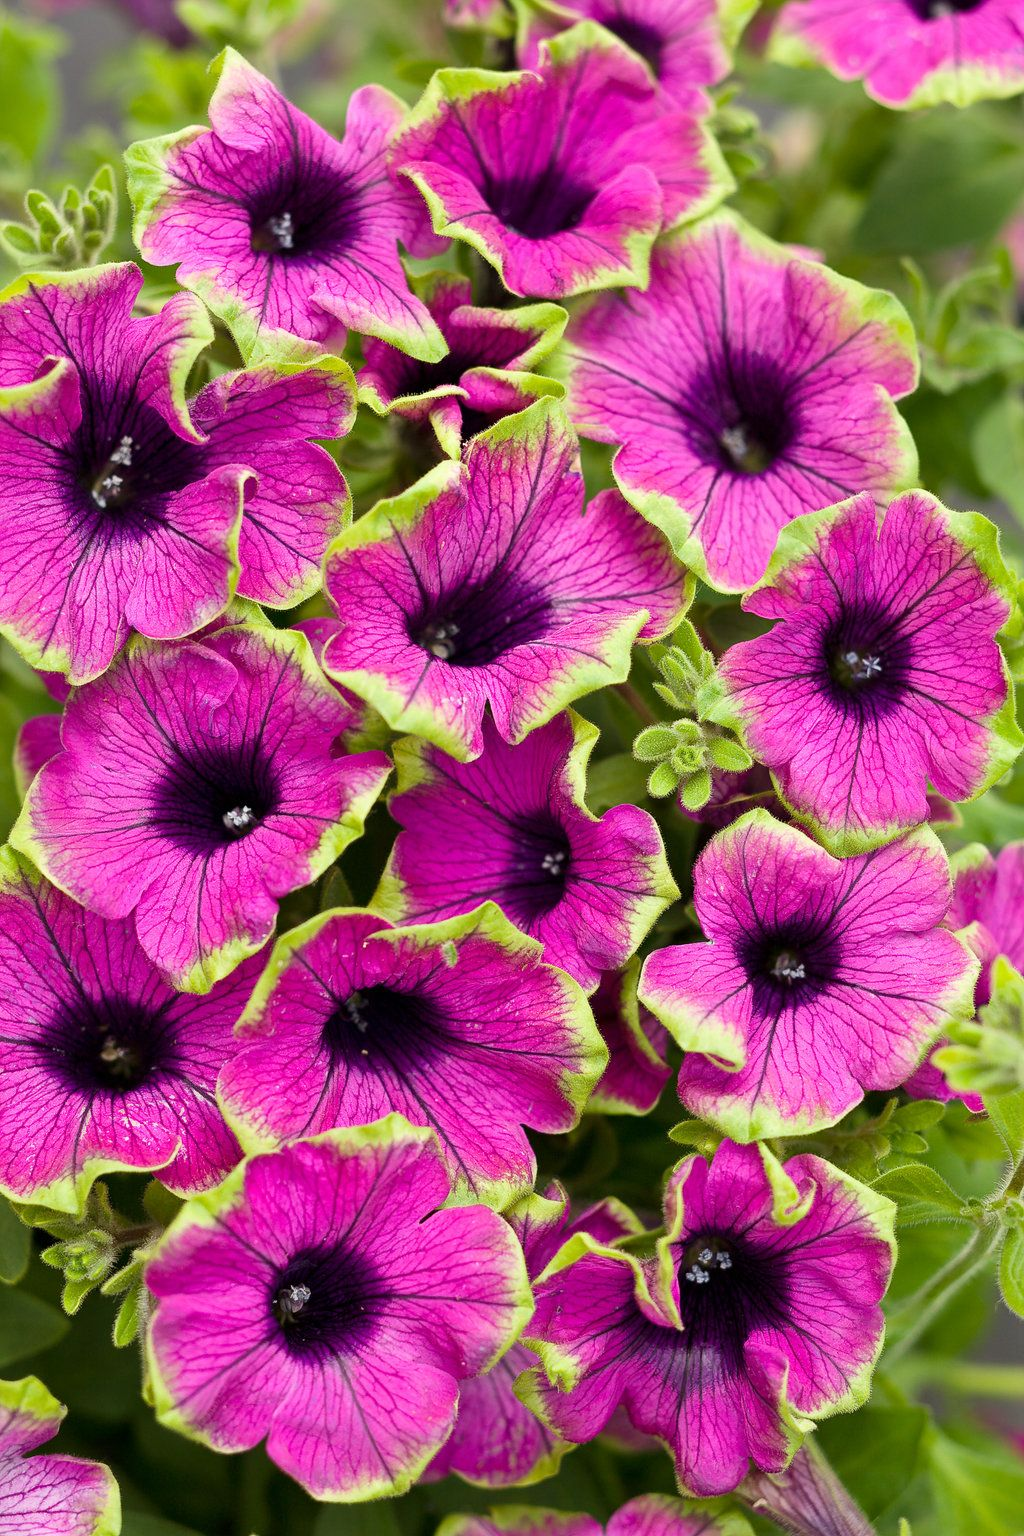 Supertunia Pretty Much Picasso Petunia Hybrid Annual Flowers Annual Plants Plants